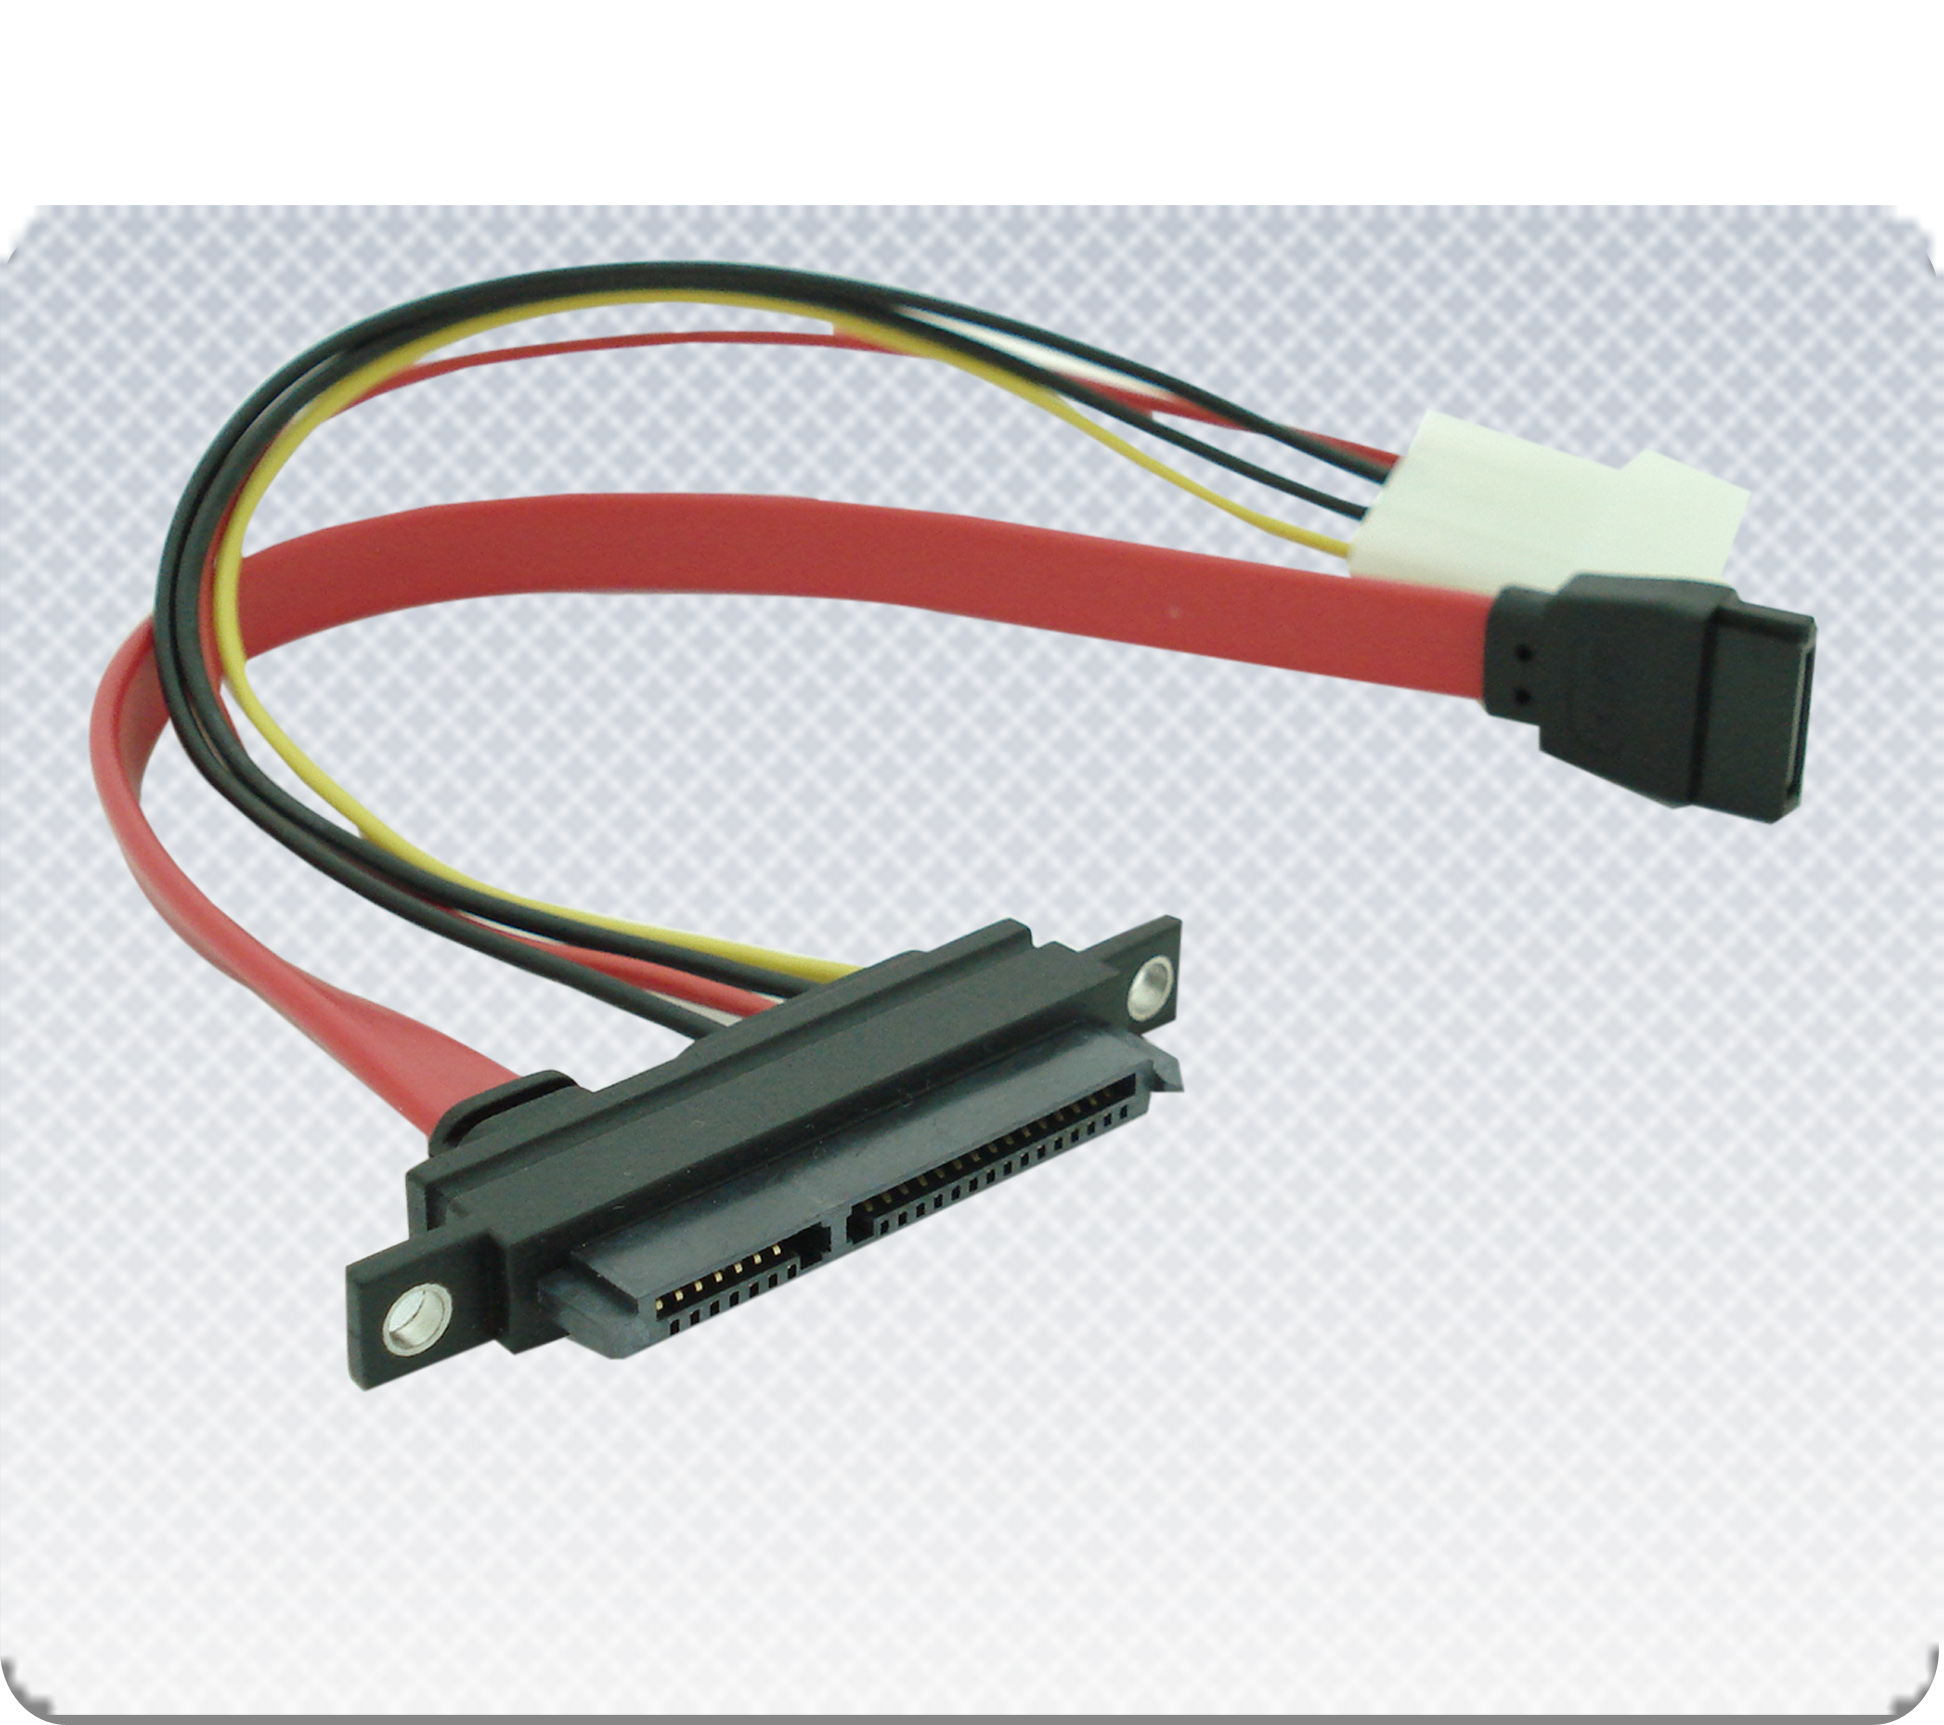 Cable Harness Manufacturers In Mexico Get Free Image About Wiring  #963B36